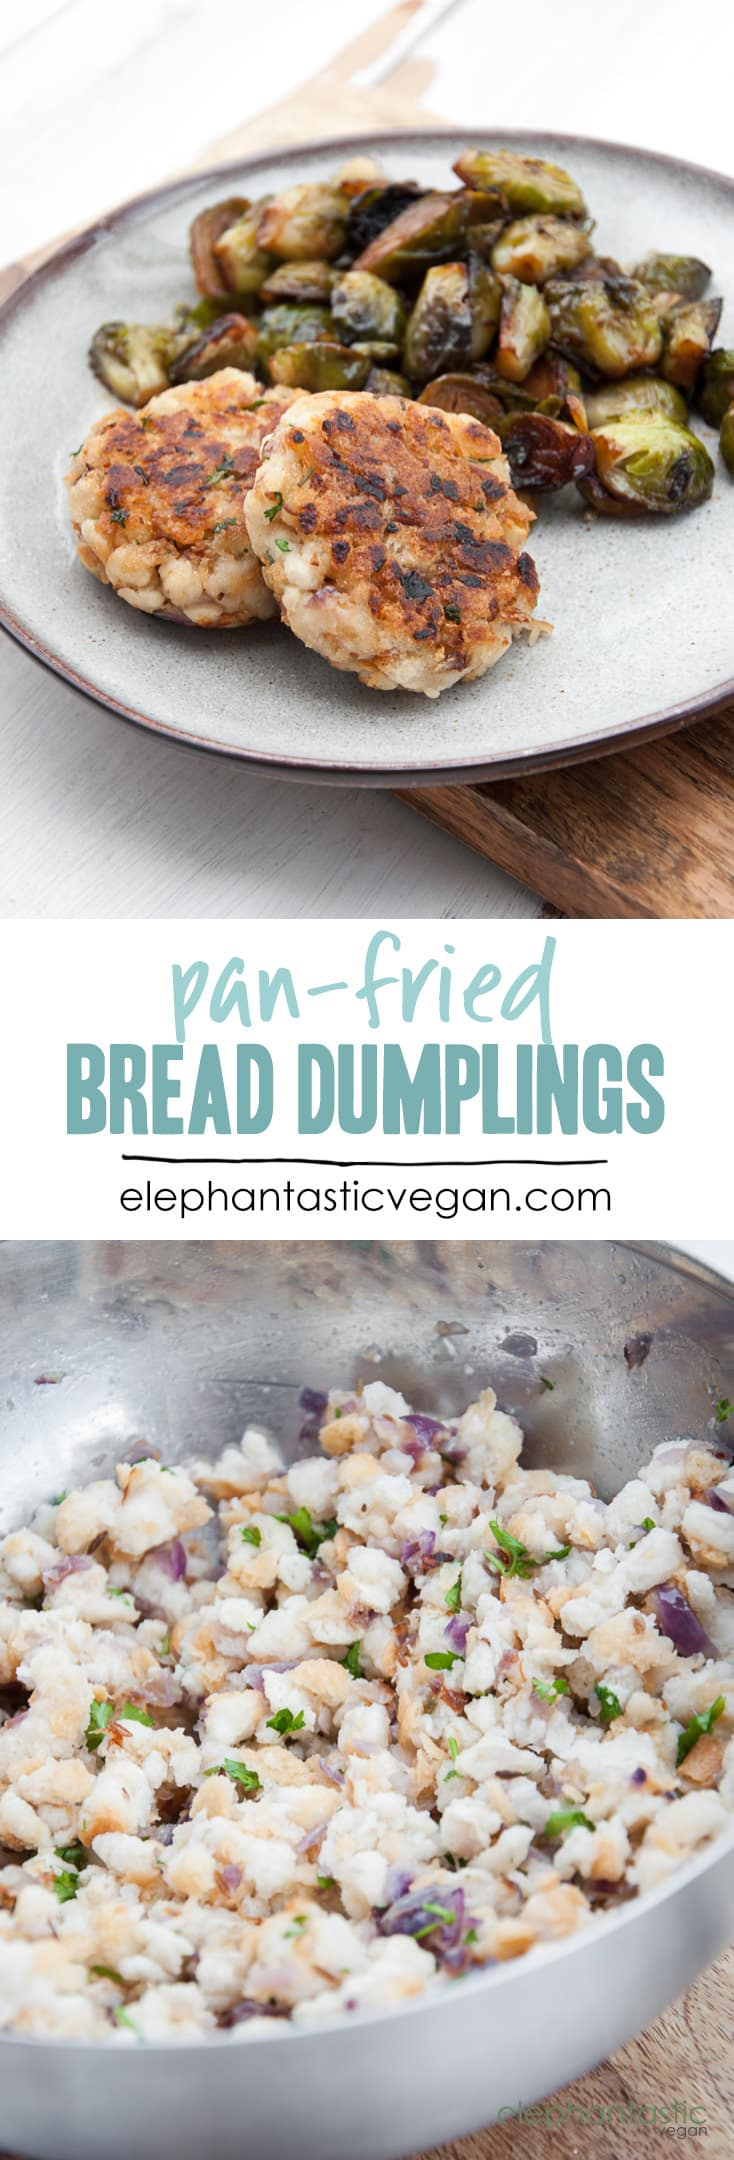 Pan-Fried Bread Dumplings | ElephantasticVegan.com